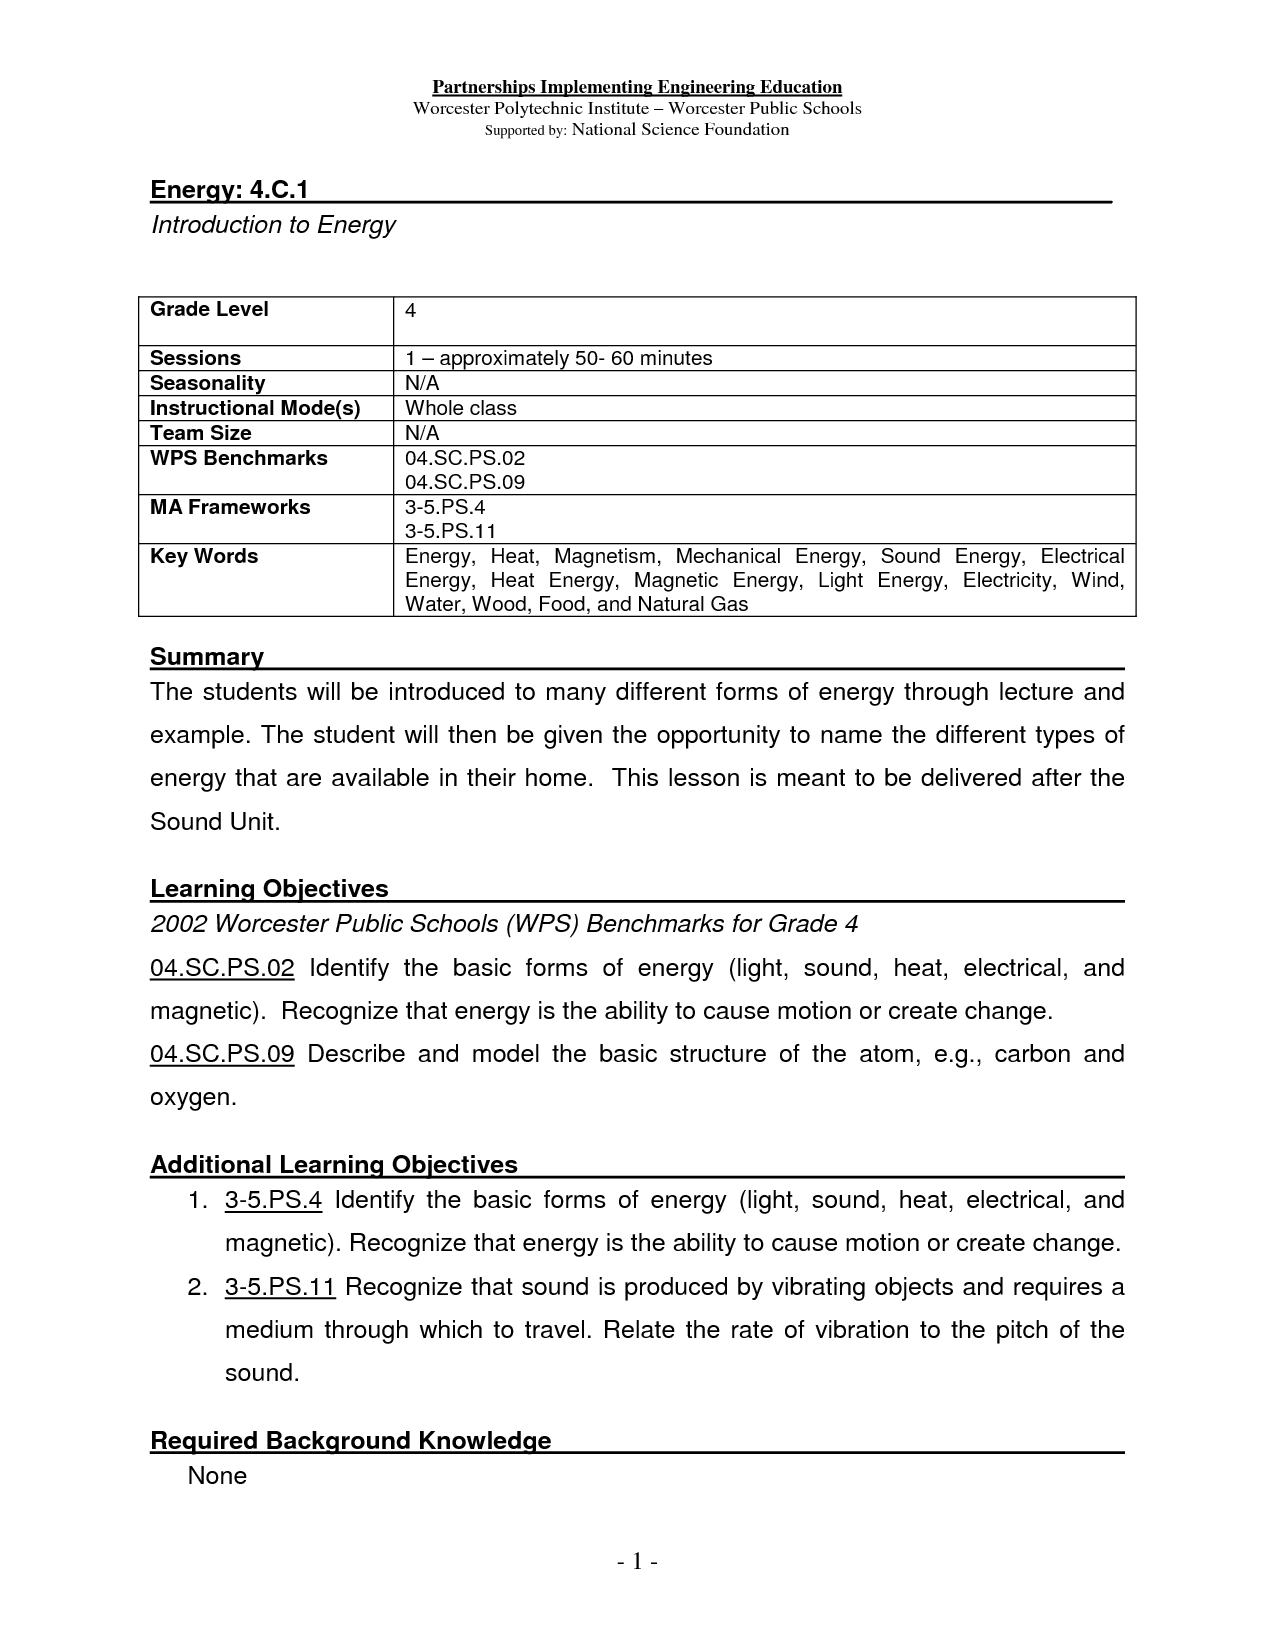 17 Best Images Of Types Of Energy Worksheet